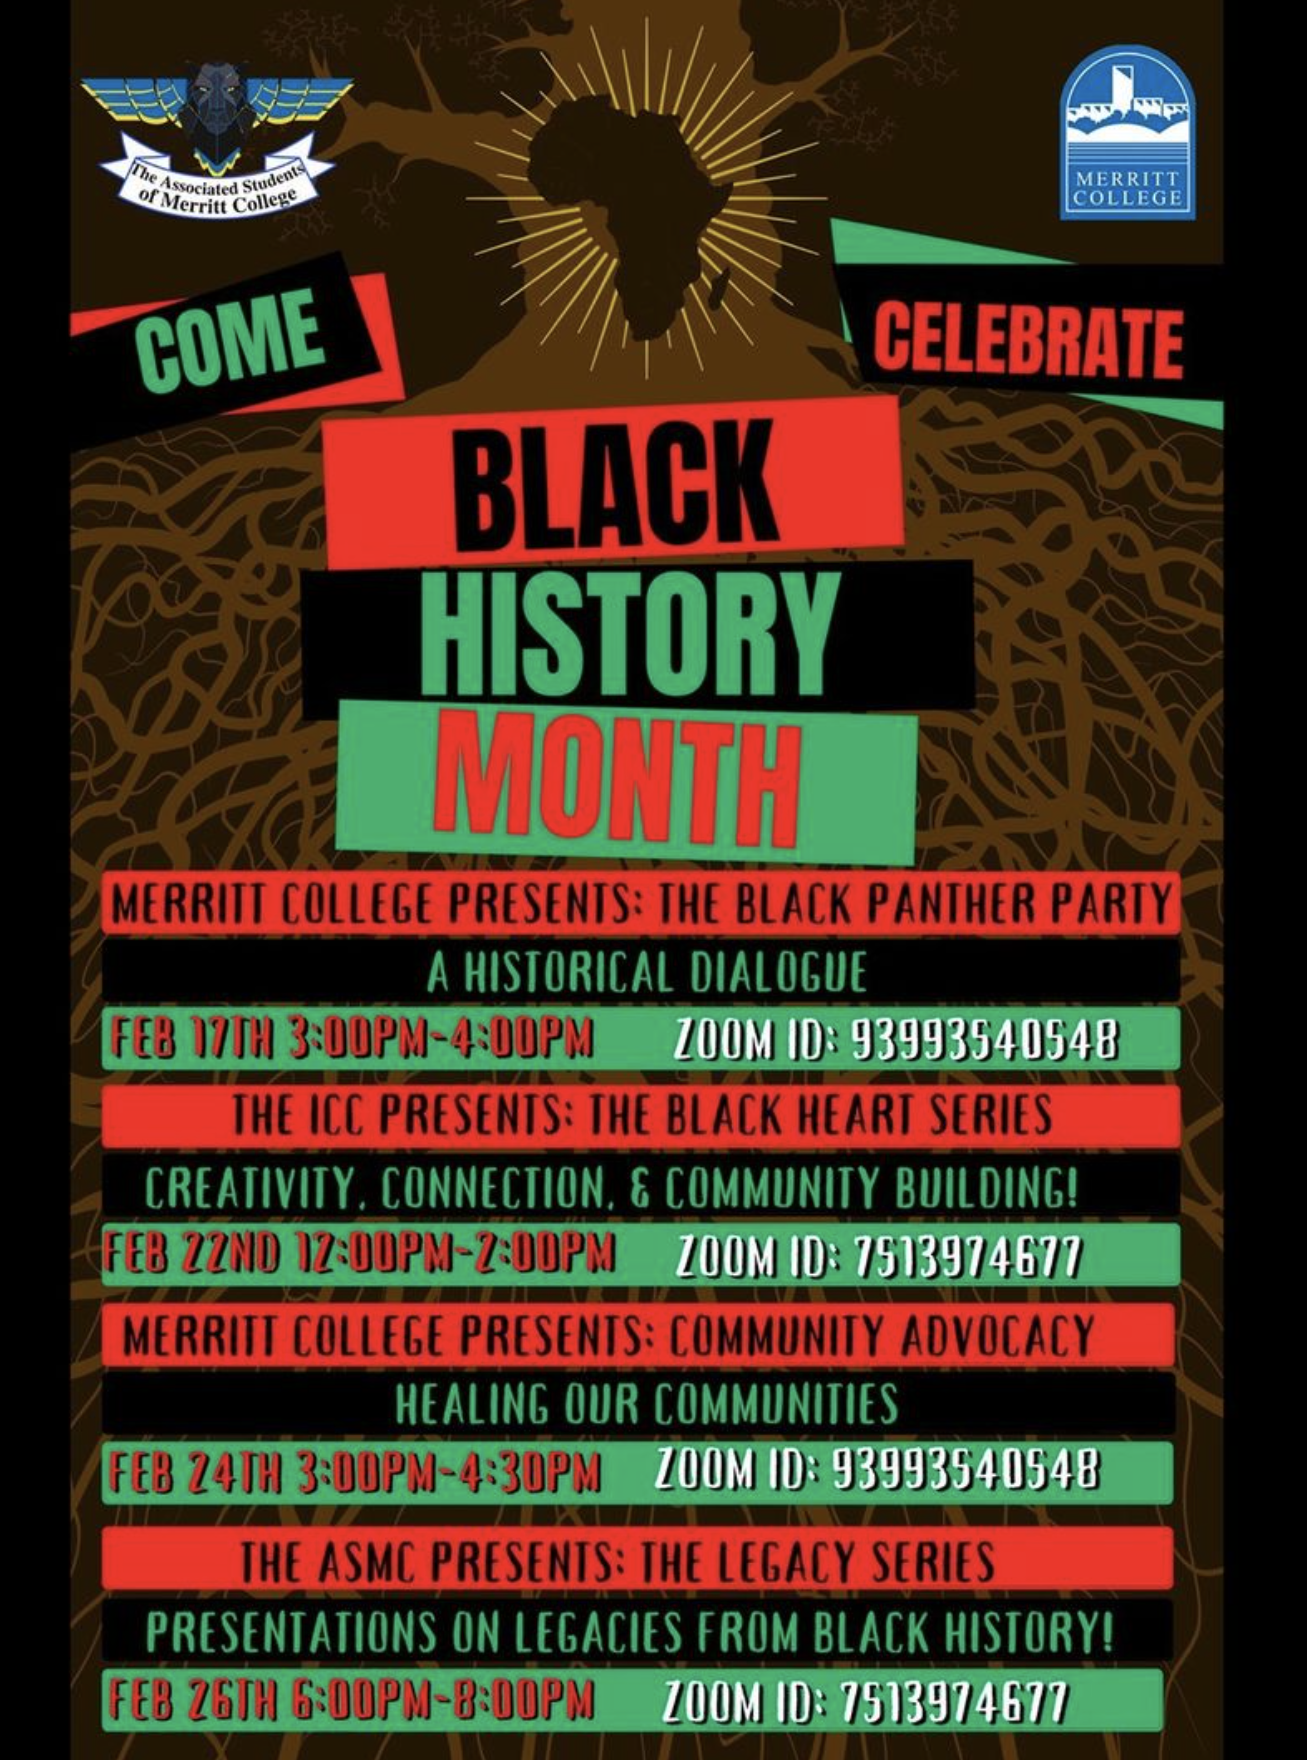 Black History Month events at Merritt College